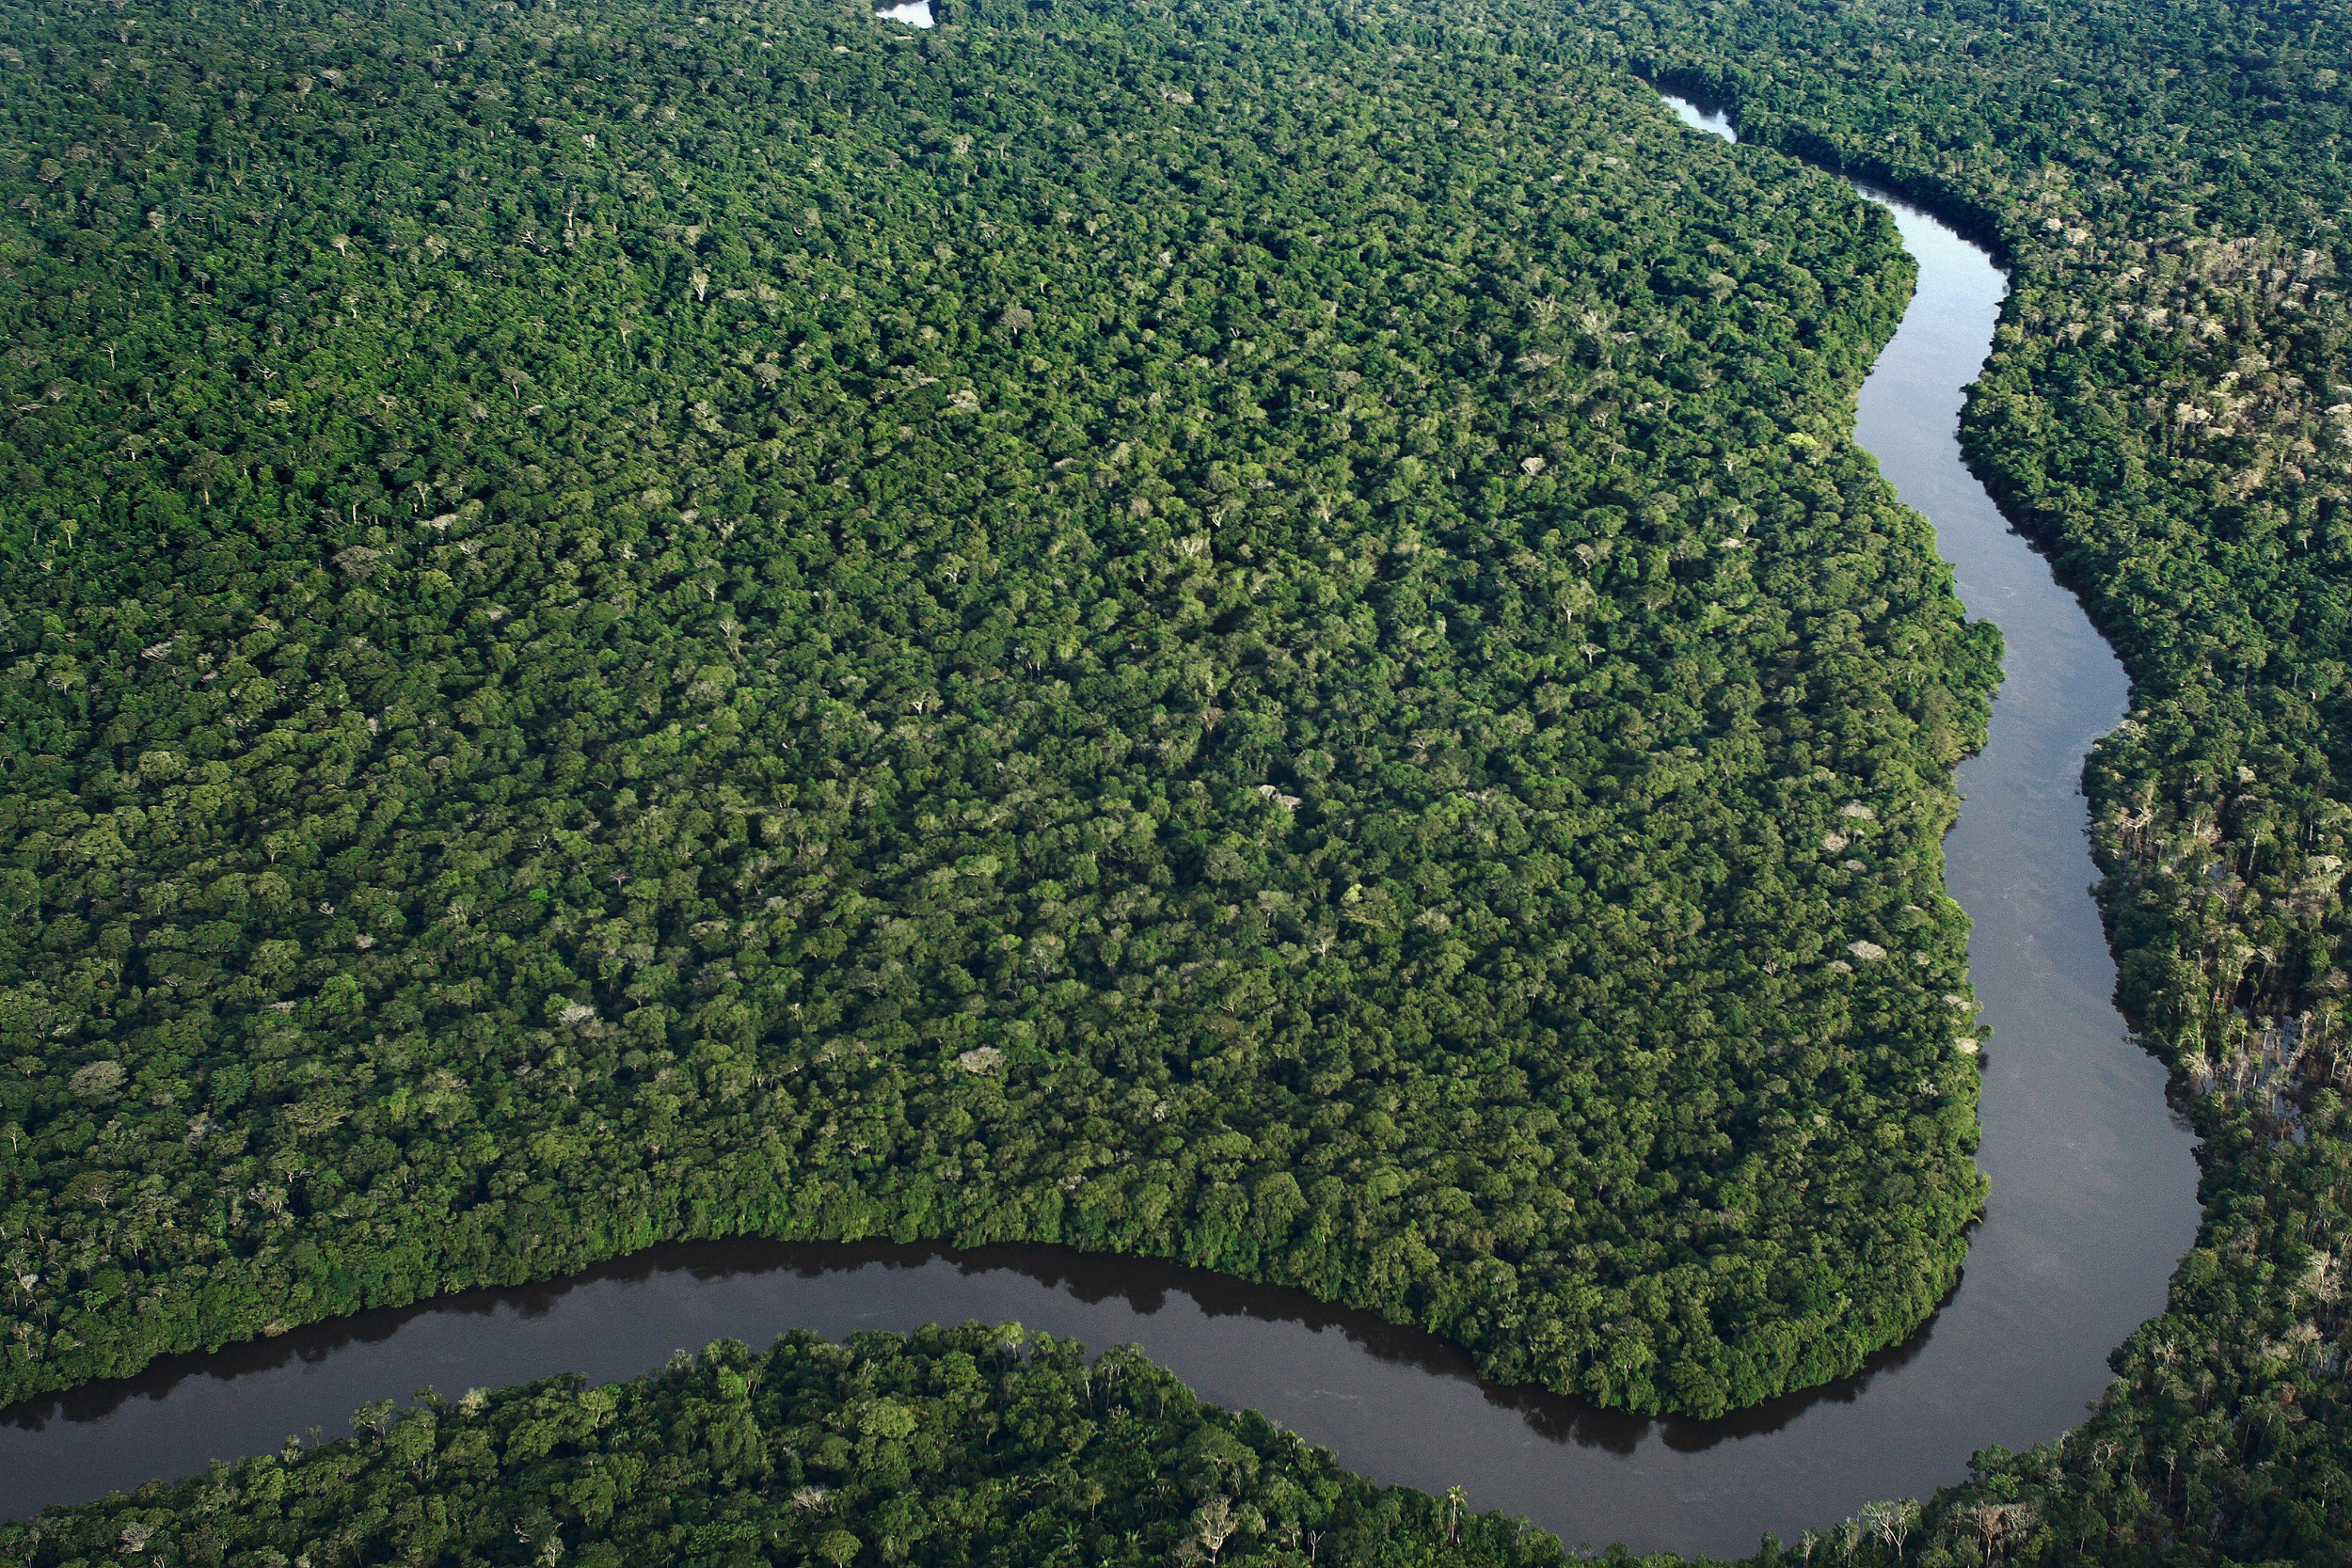 aerial view of Amazon forest